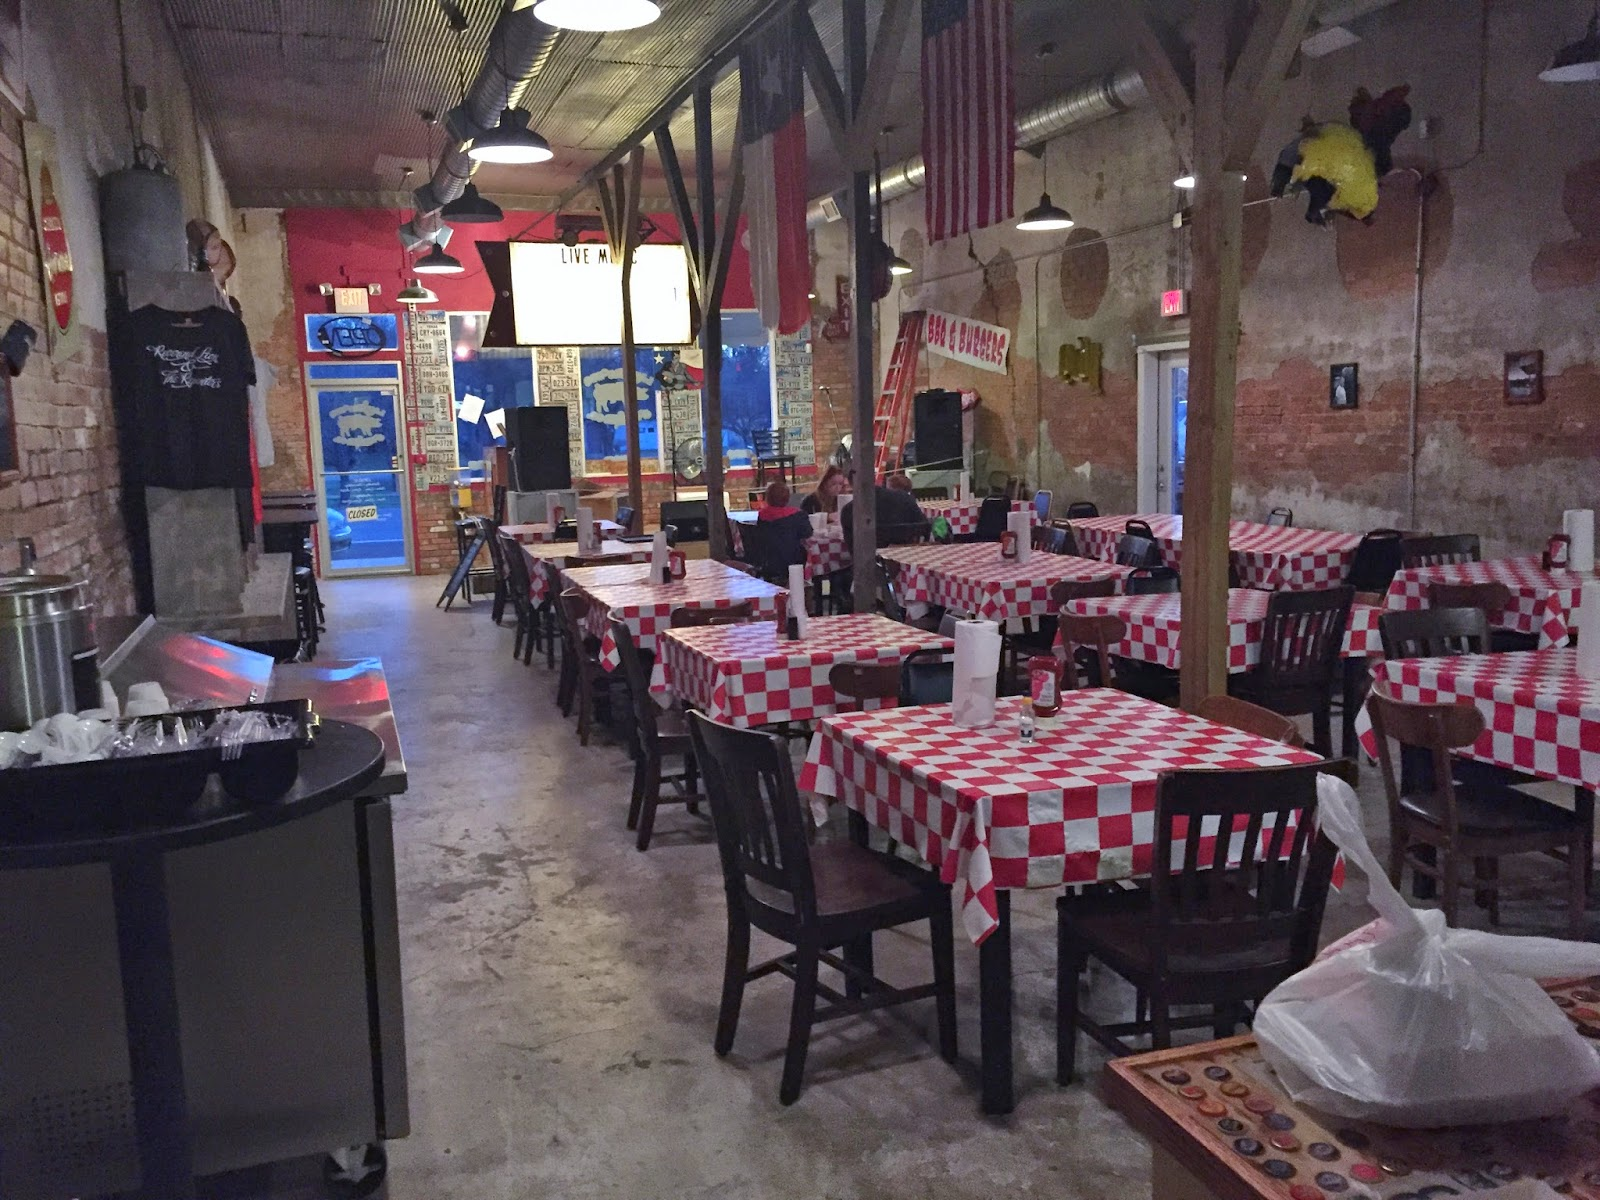 Lander's BBQ is cavernous, yet inviting.